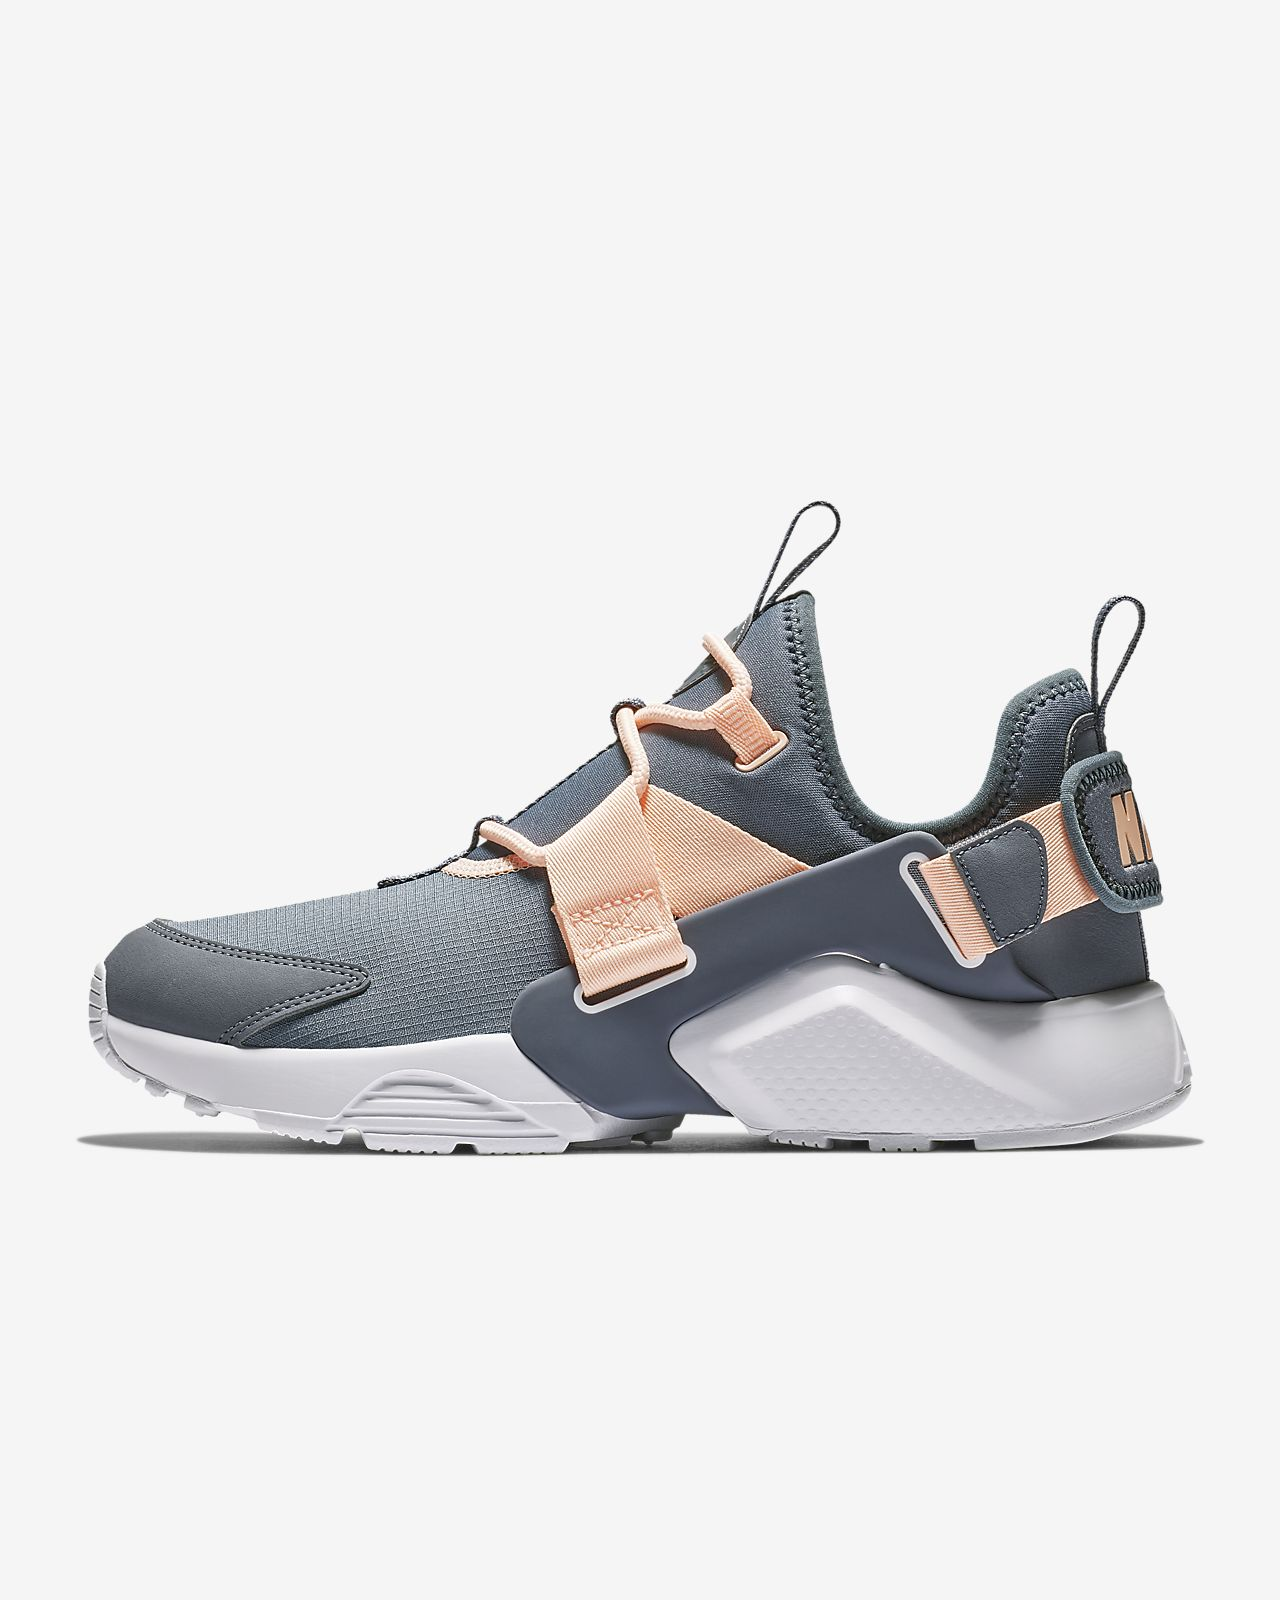 5d75f82c93d1 Nike Air Huarache City Low Women s Shoe. Nike.com